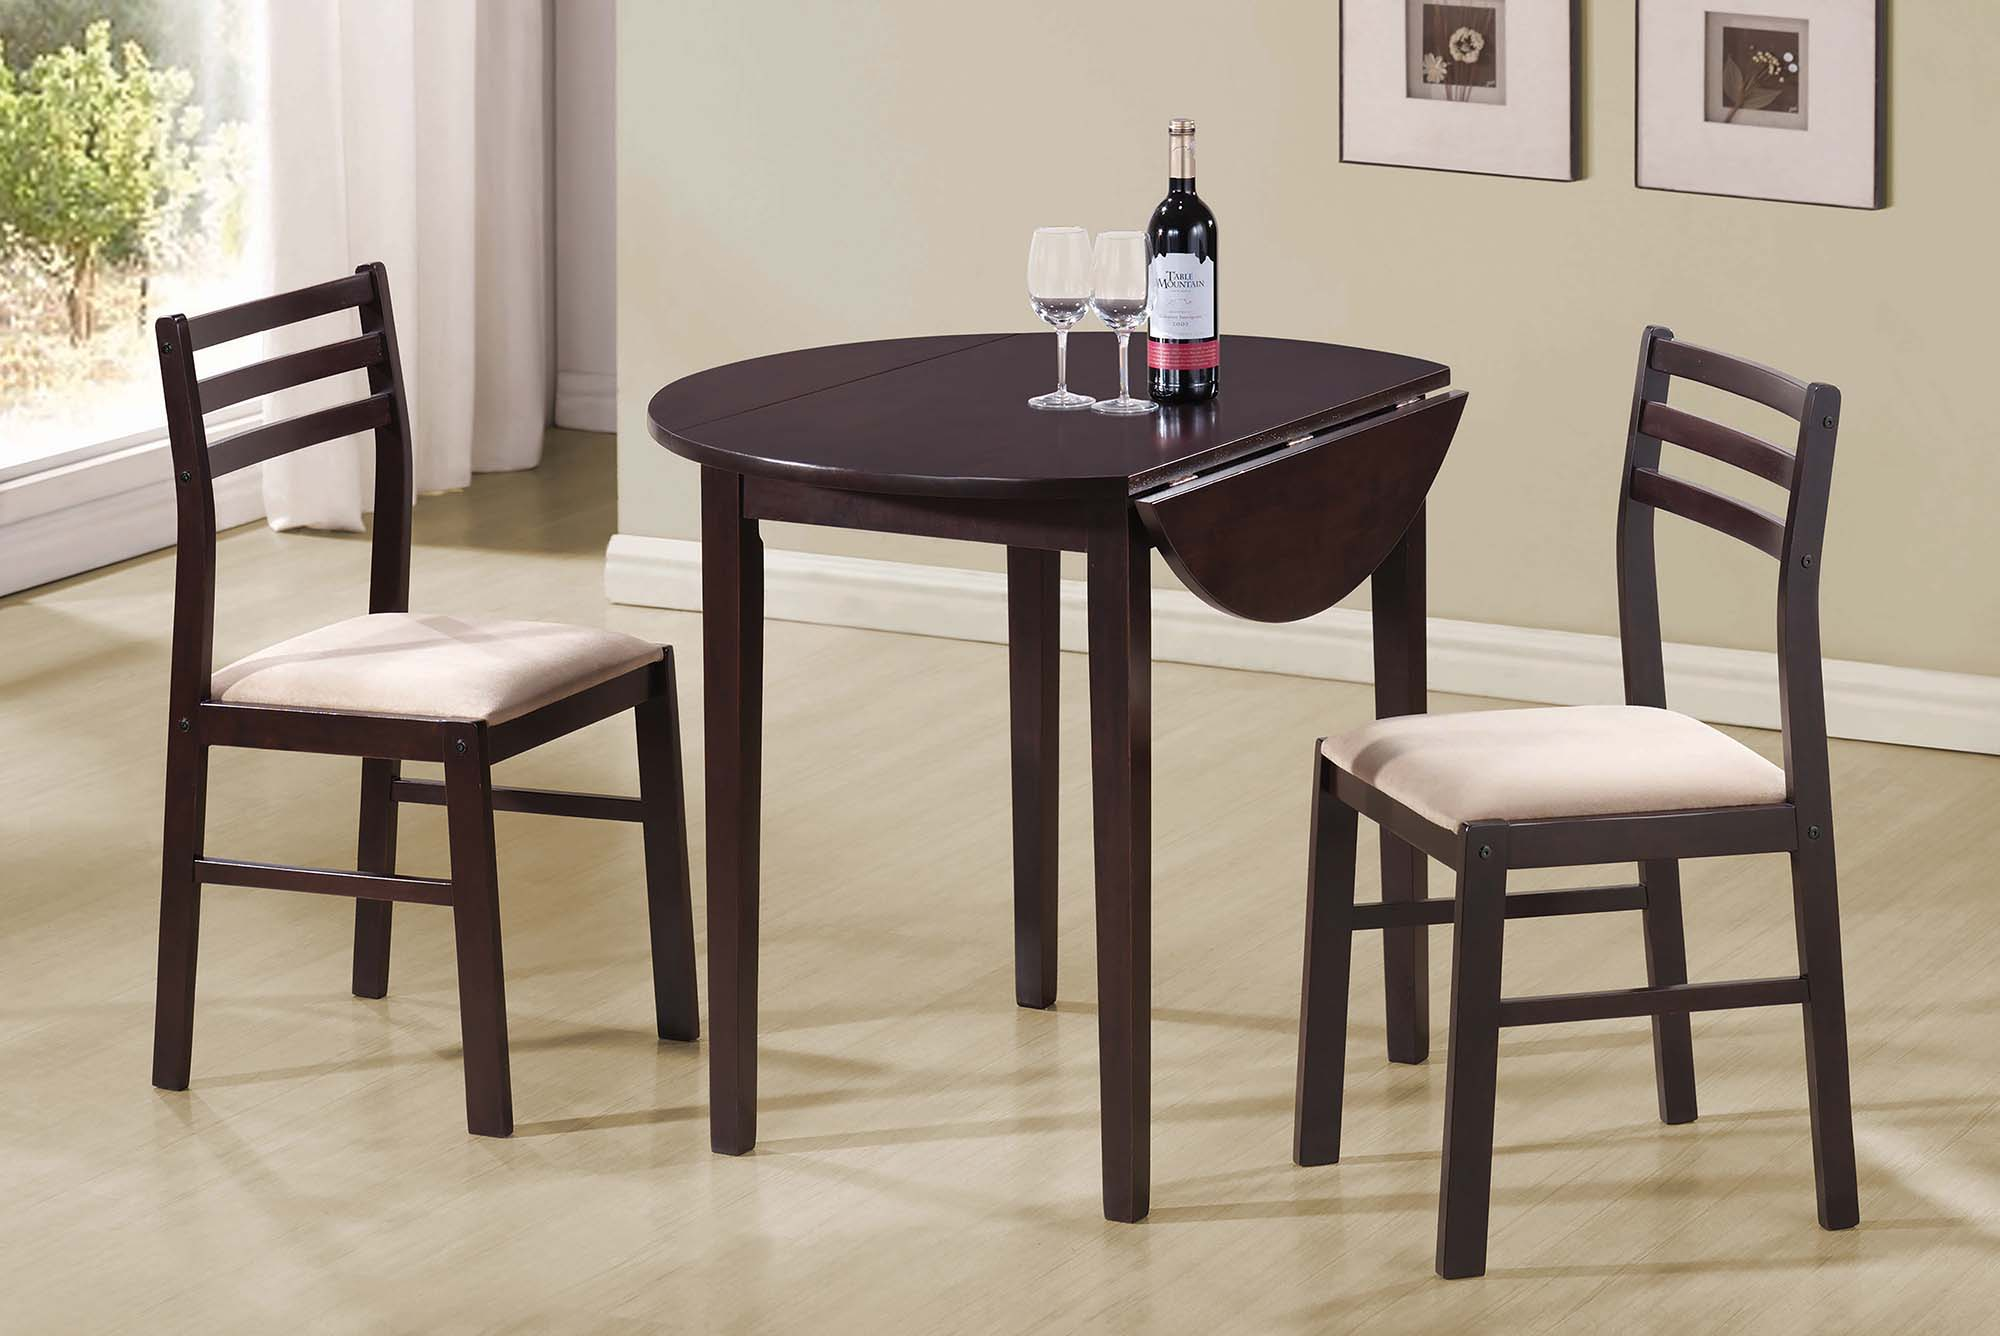 Casual Capp. Three-Piece Dining Set